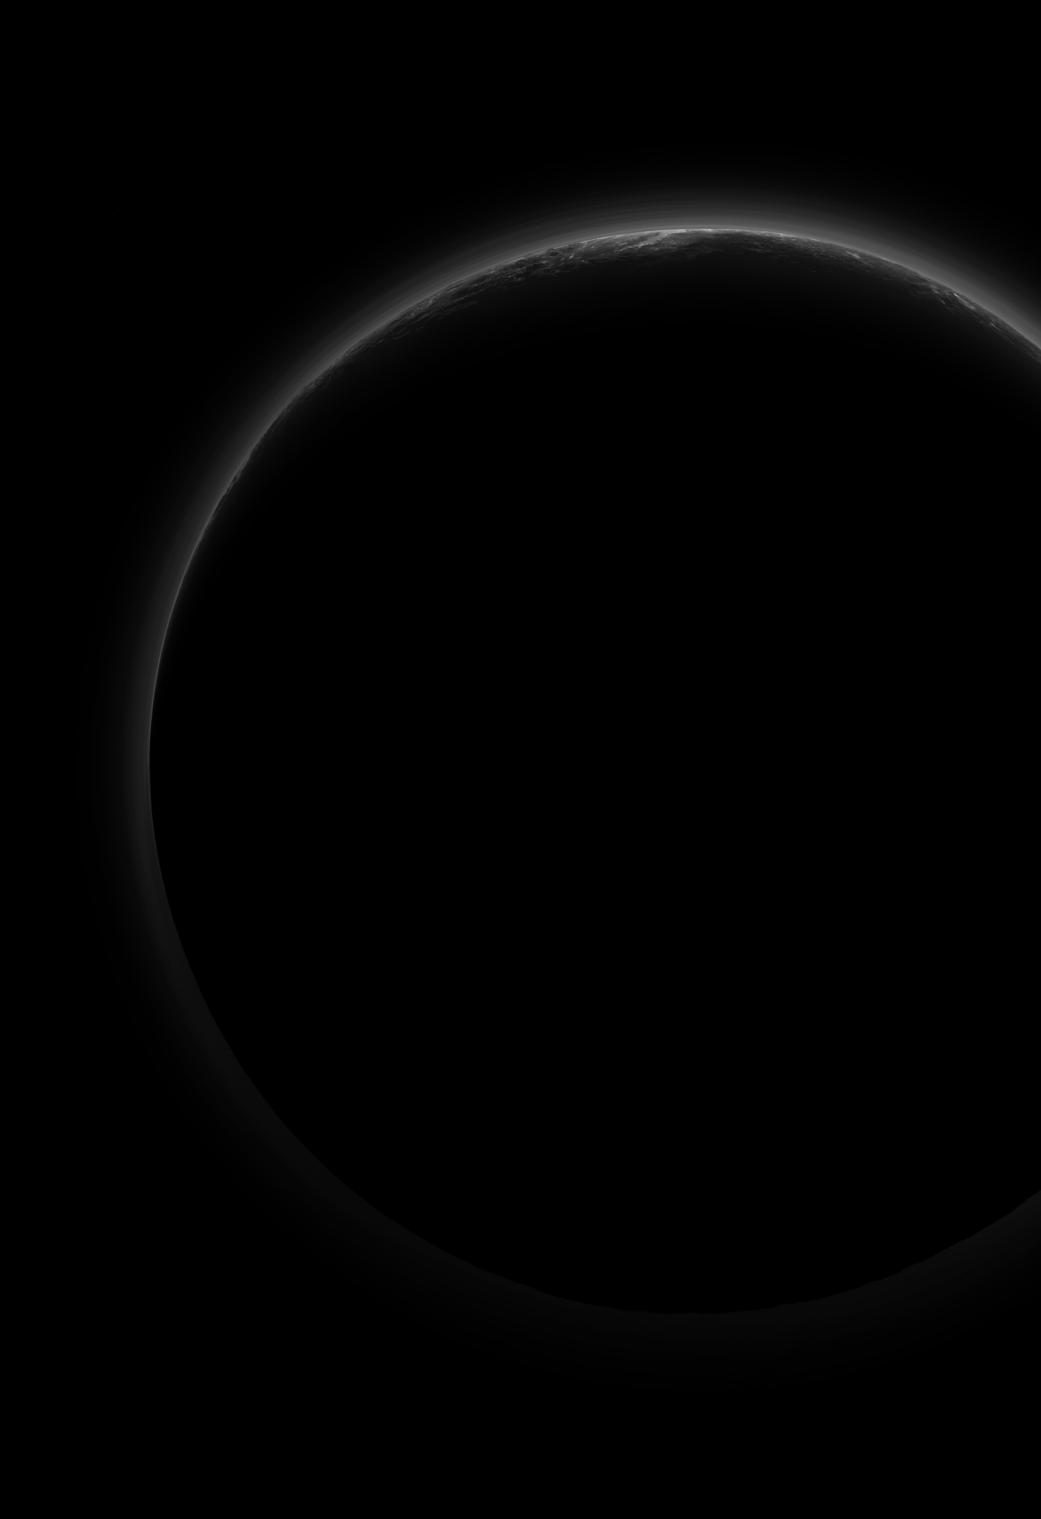 black outline of a planet